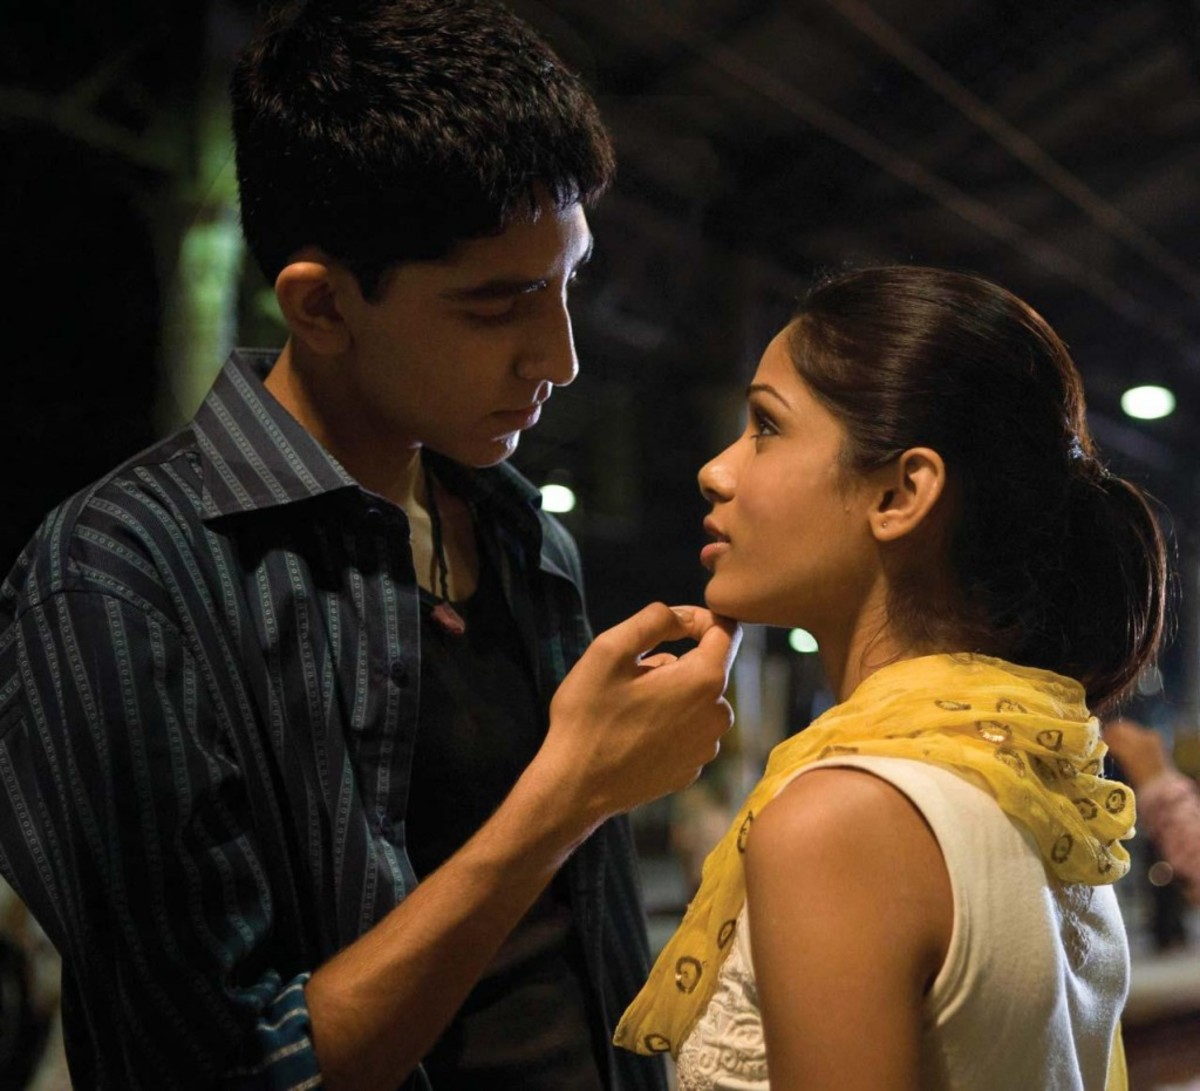 Dev Patel as Jamal and Freida Pinto as Latika in Slumdog Millionaire PRODUCTION PHOTOS:ISHIKA MOHAN COURT E S Y : FOX SEARCHLIGHT